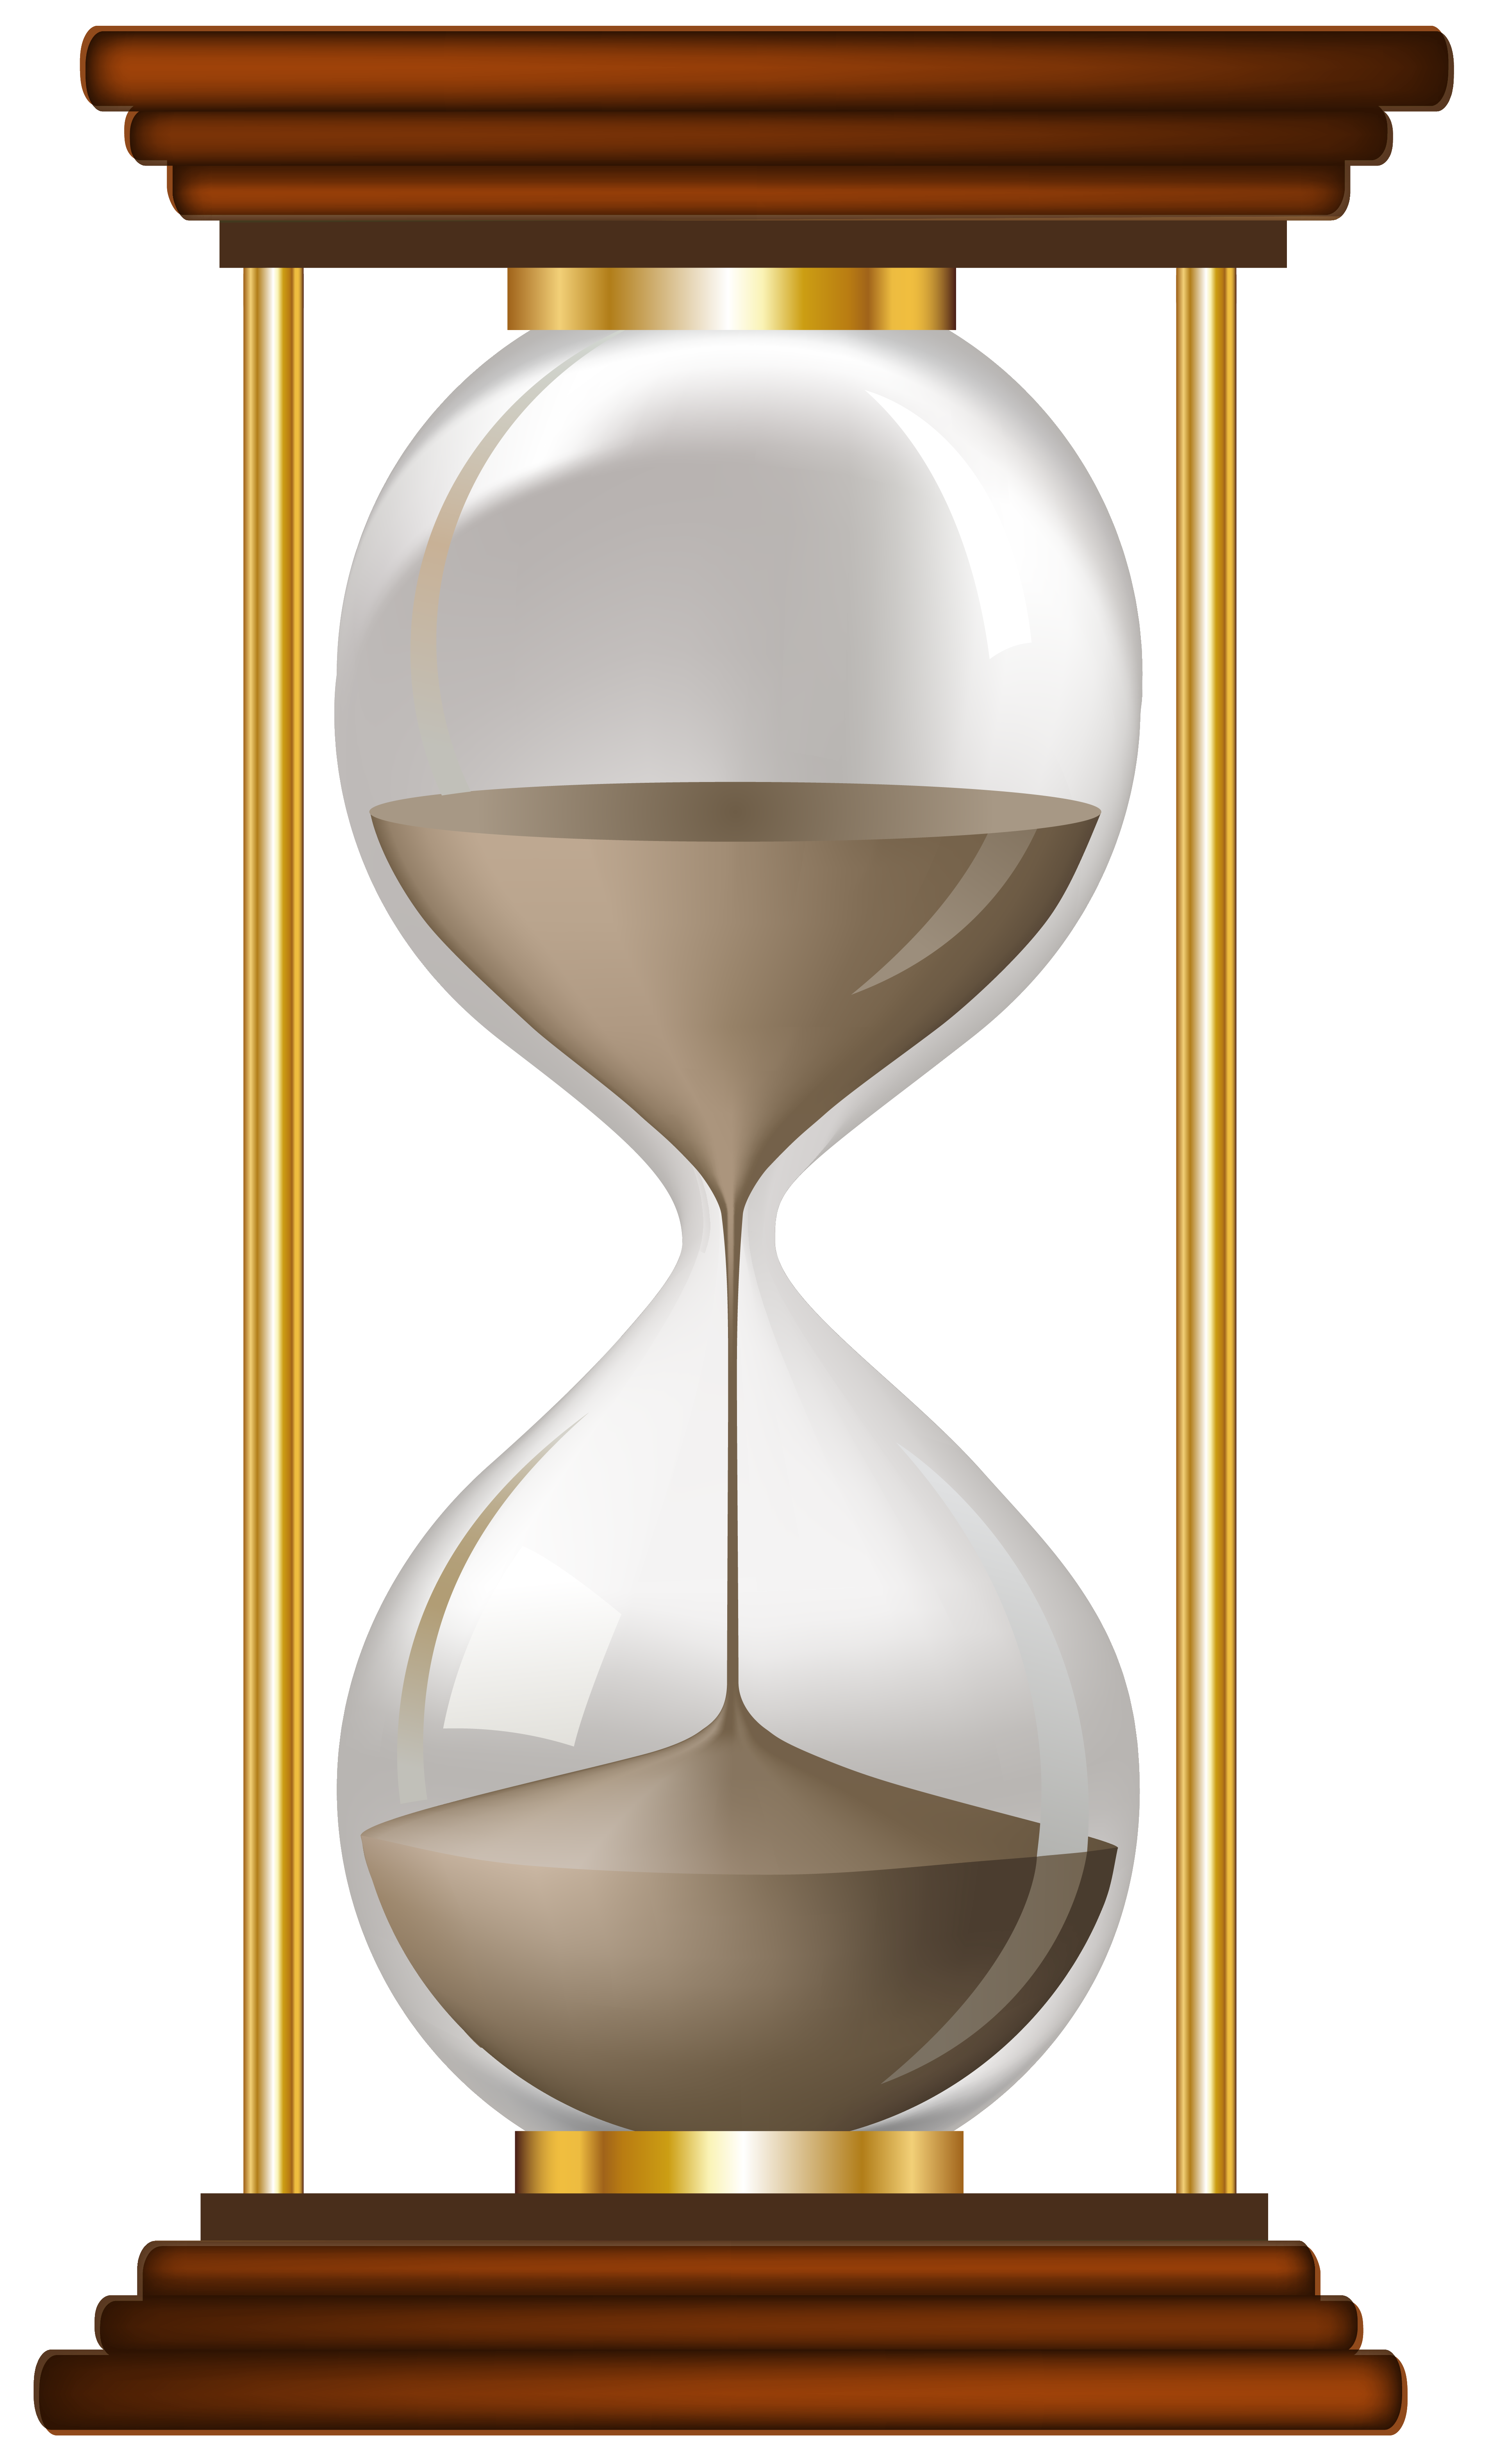 graphic free Sand clock png clip. Hourglass clipart transparent background.